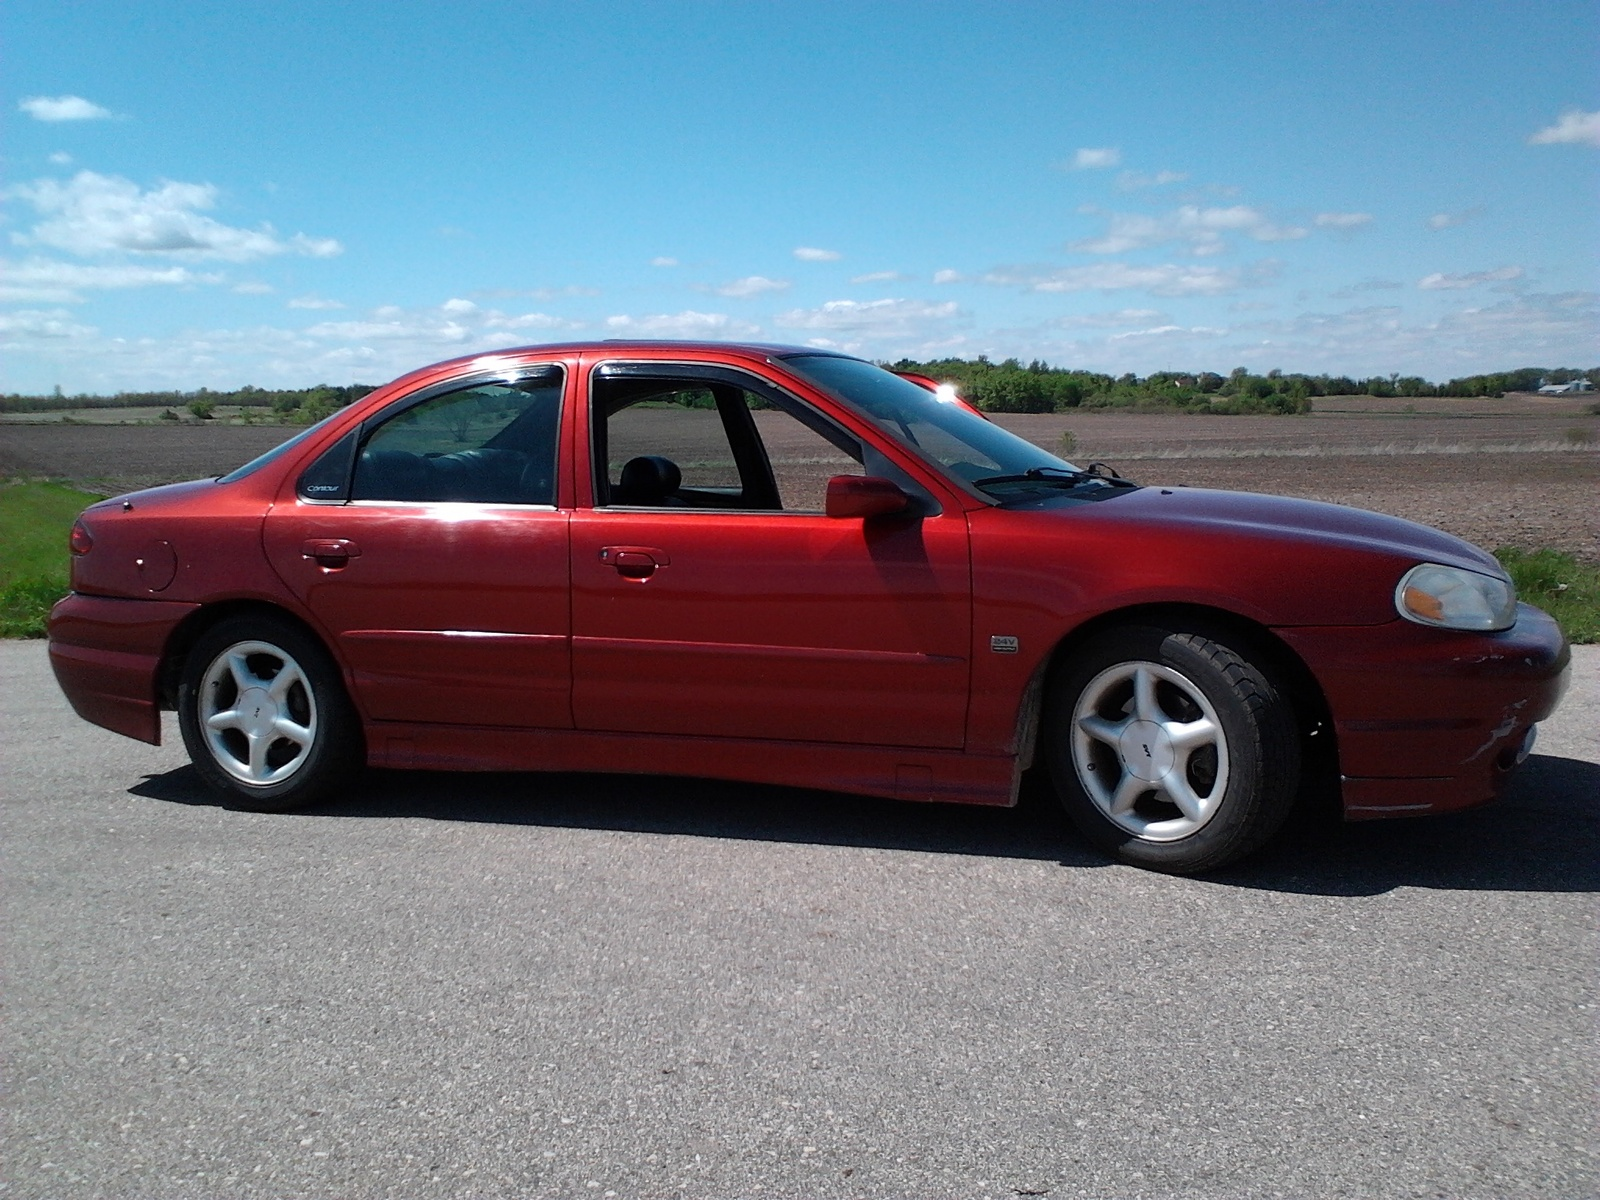 2000 Ford Contour Svt Specs - New Car Release Date and ...